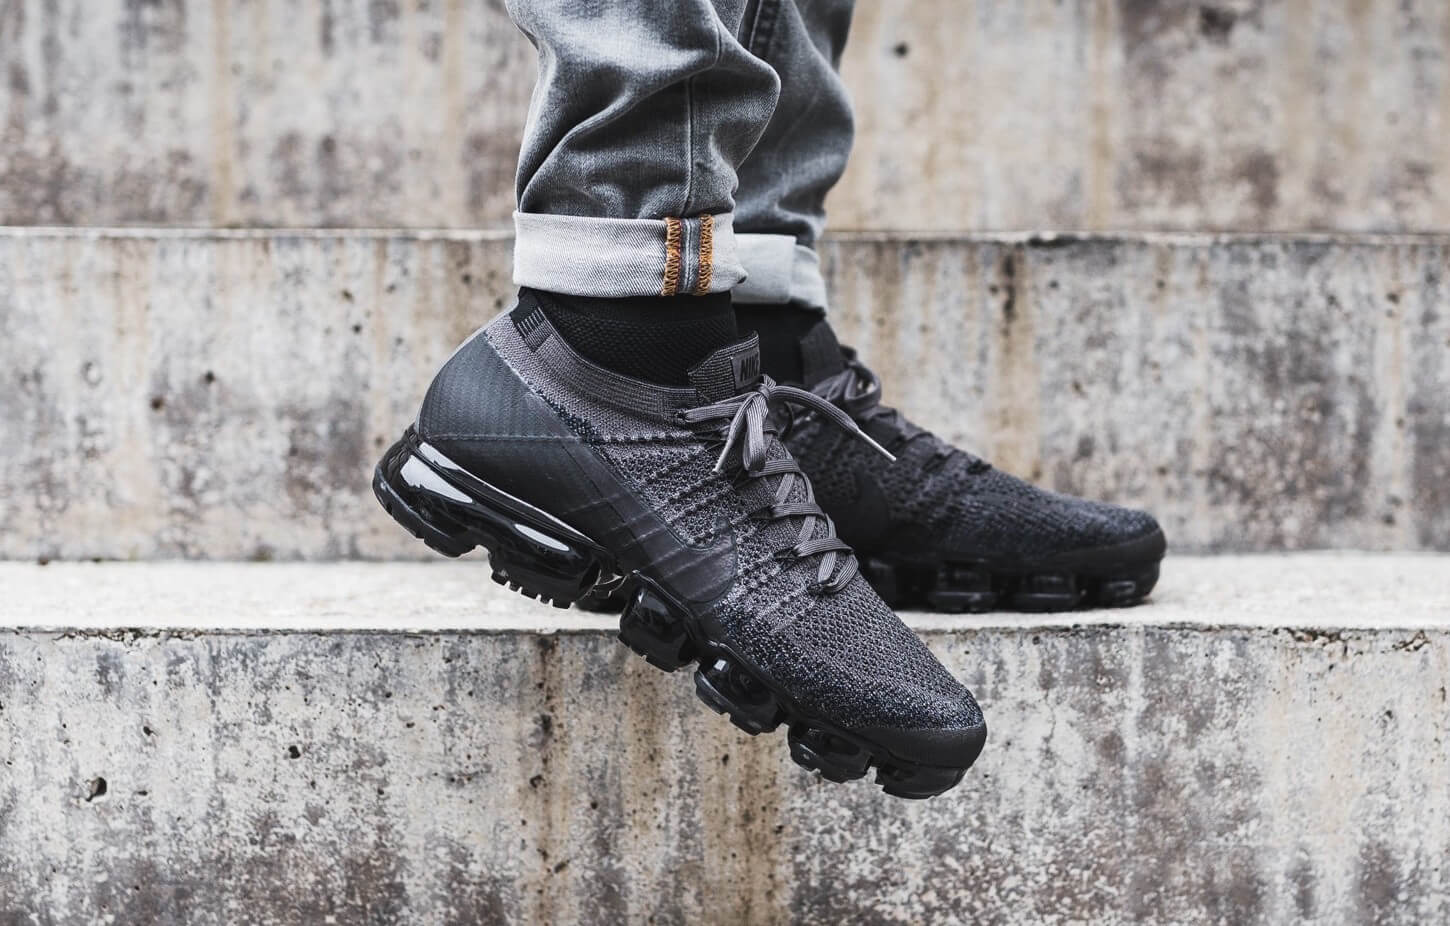 outlet store f1900 39ae8 The Nike Air VaporMax Midnight Fog Releasing Soon - WassupKicks